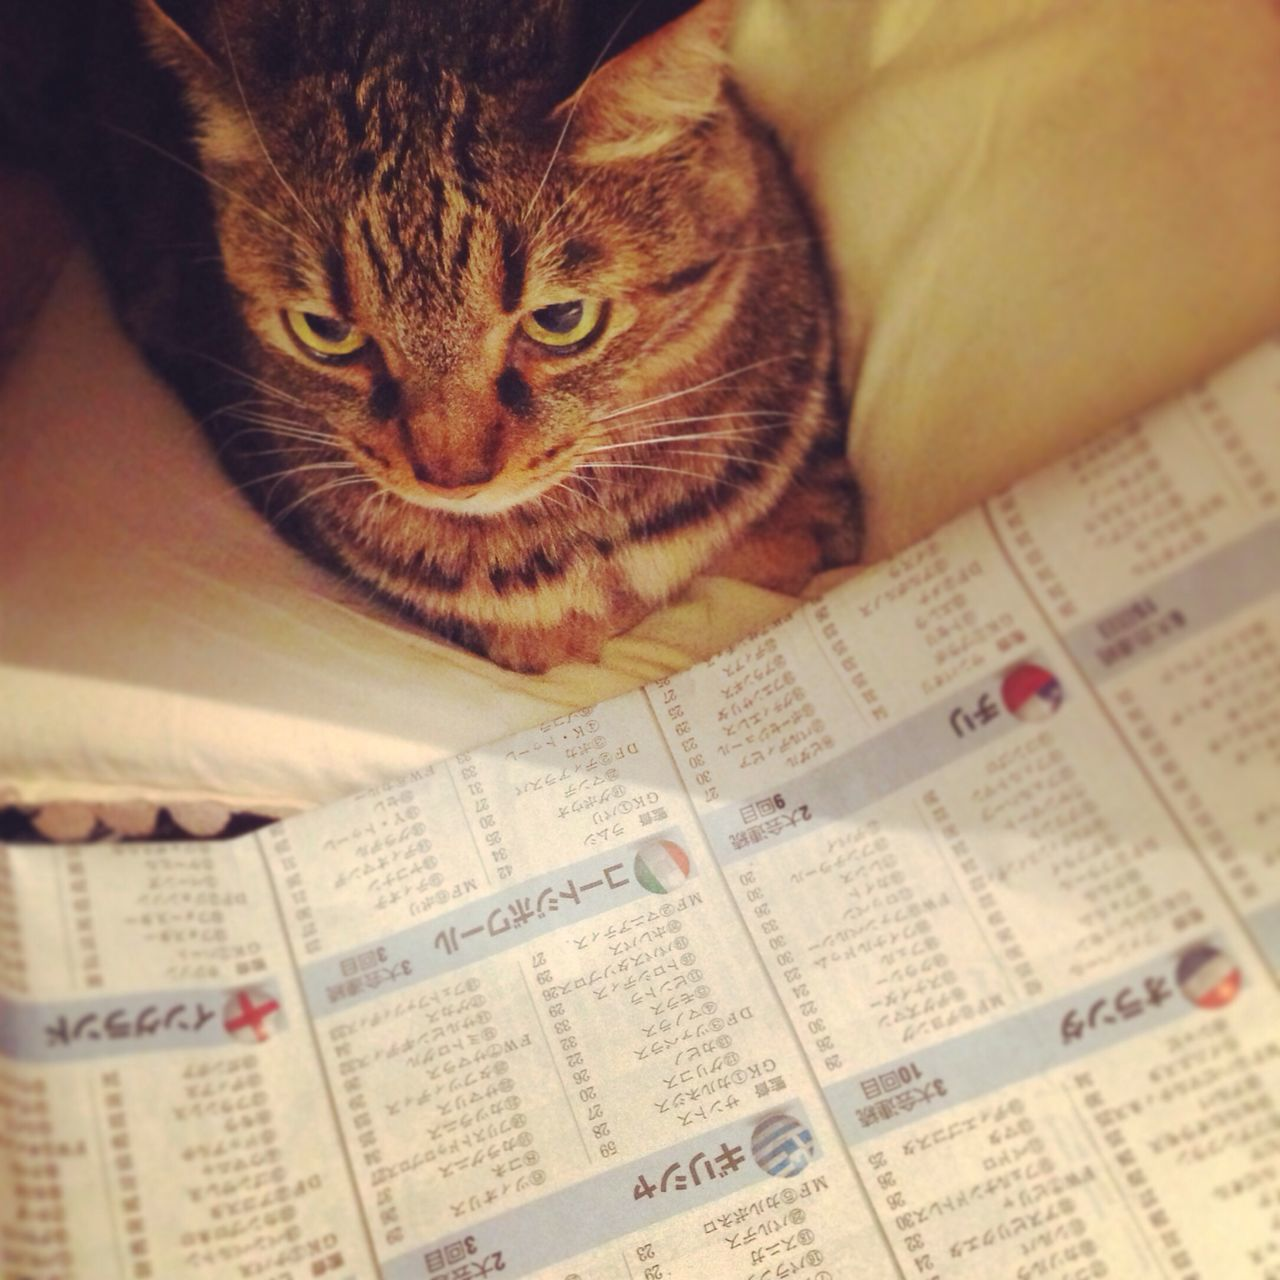 checking datas for FIFA World Cup 2014 Hello World Worldcup Cat Check This Out